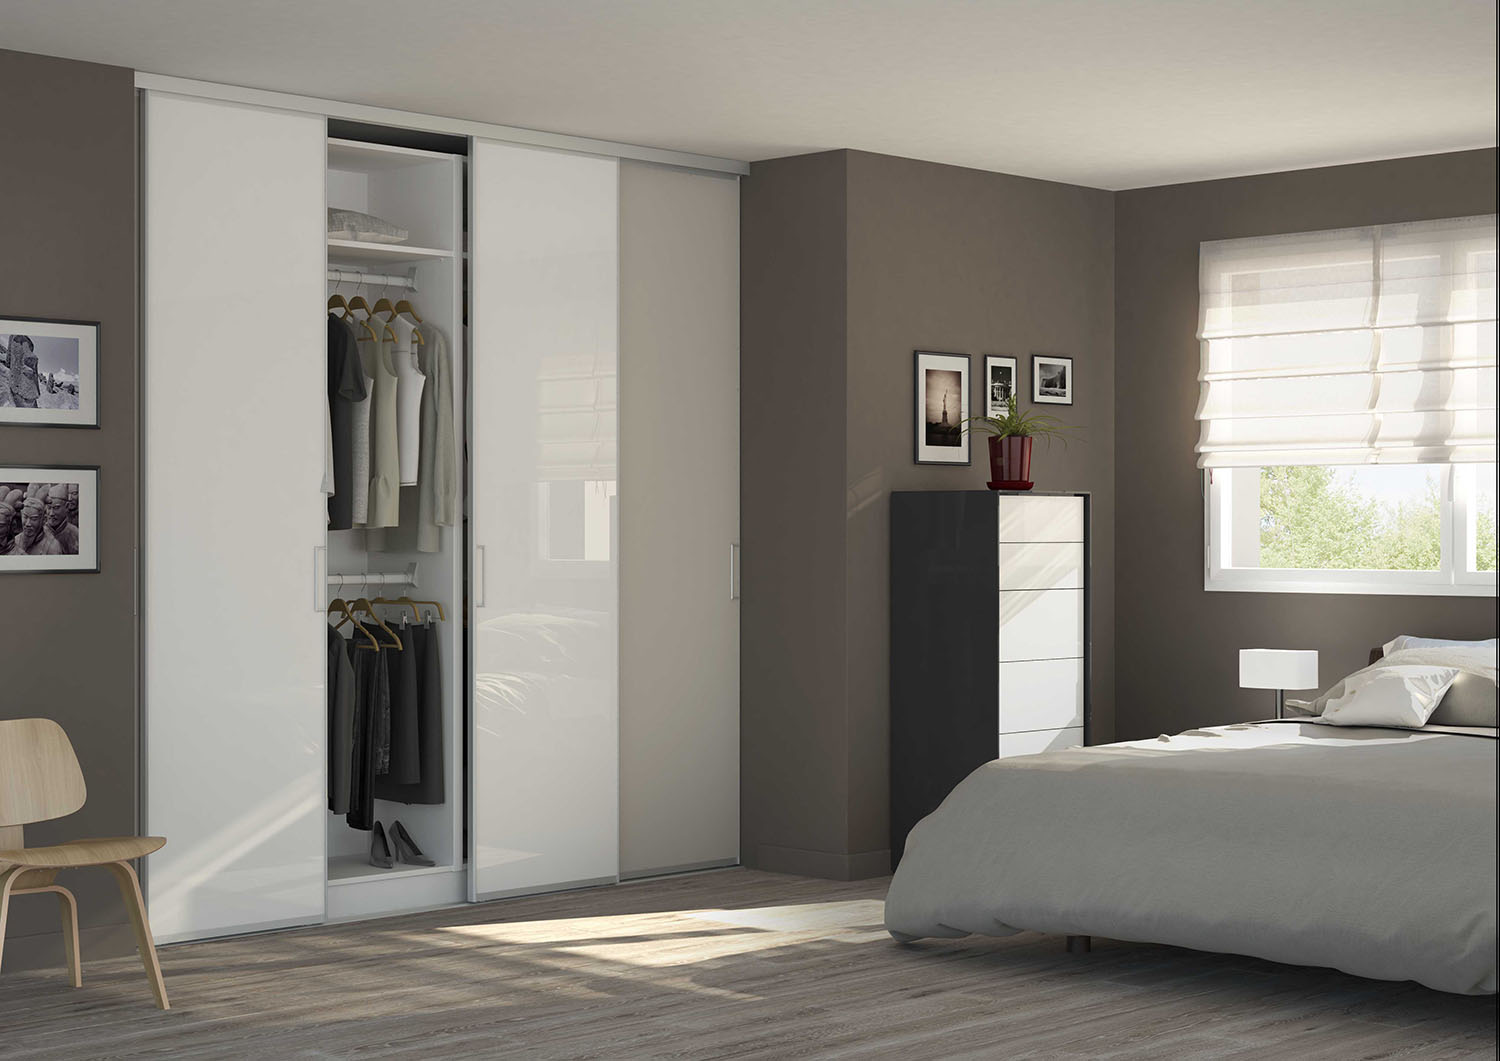 dressing dans une chambre 3 solutions pour y voir clair. Black Bedroom Furniture Sets. Home Design Ideas